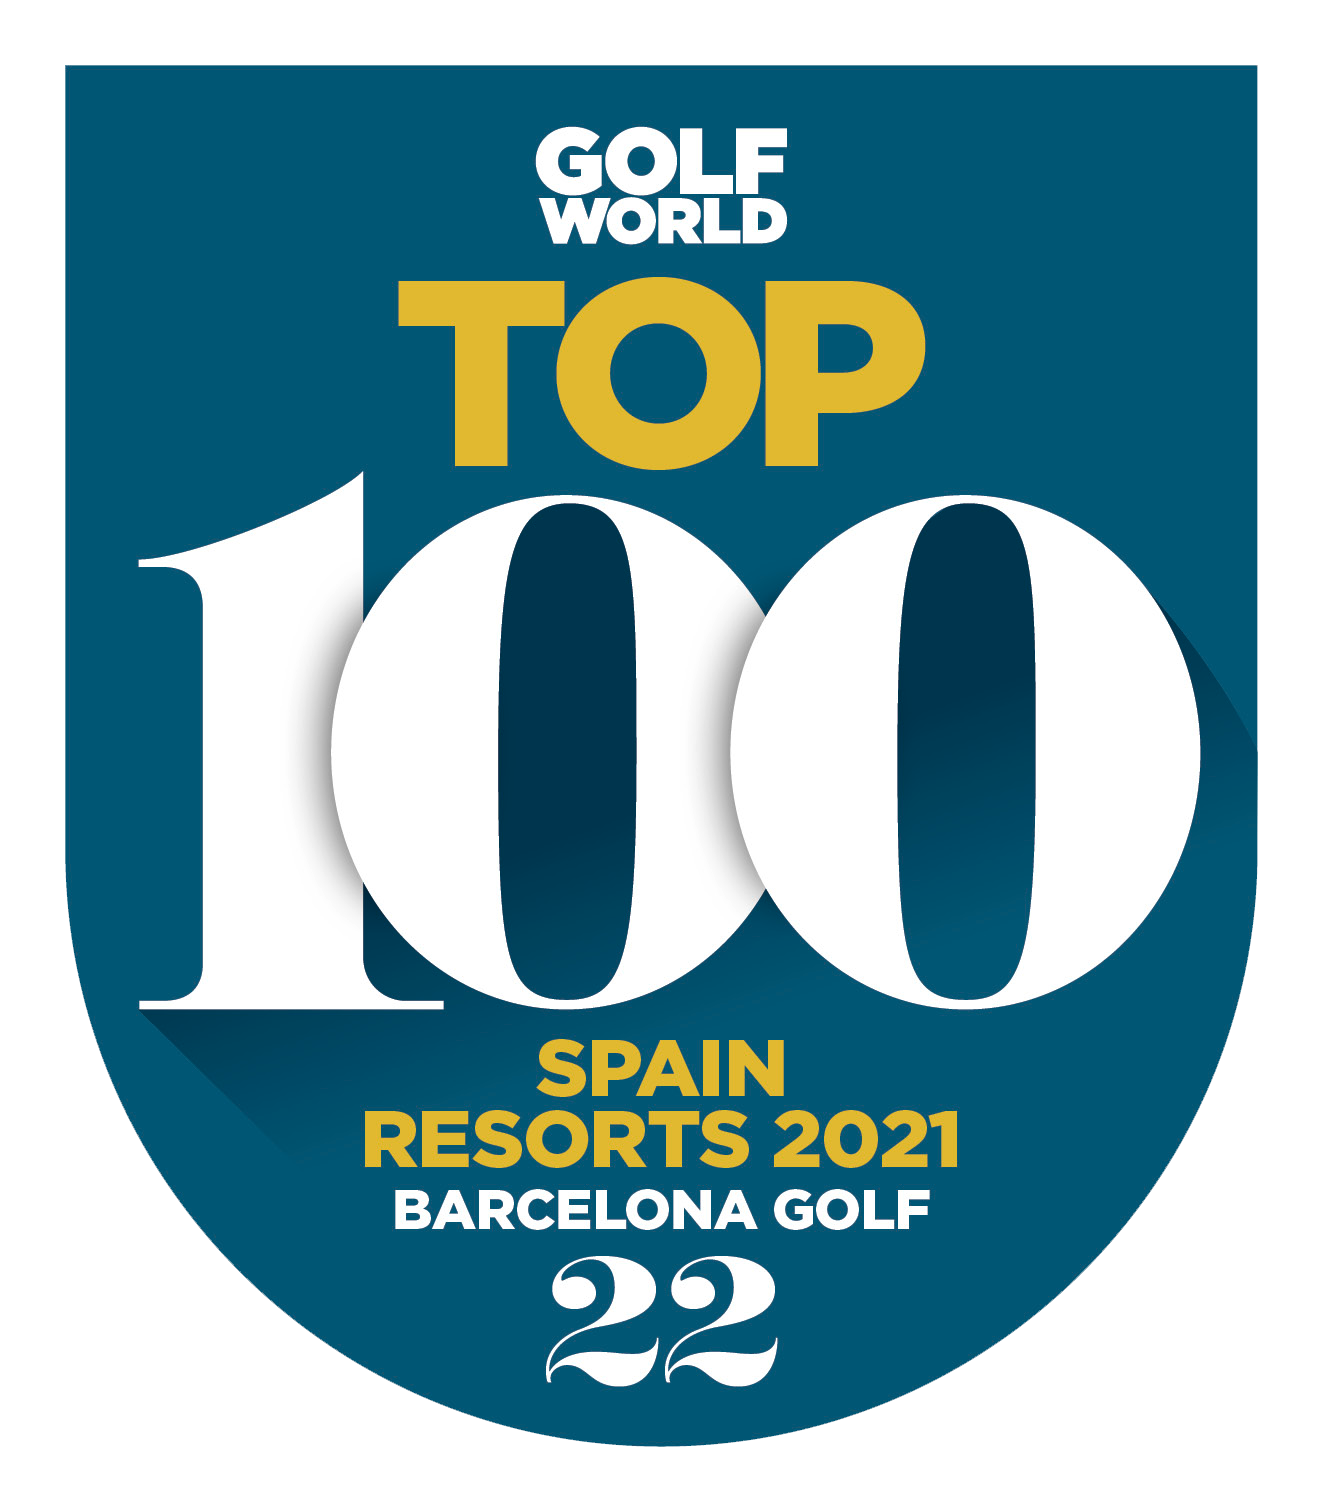 Golf World Top 100 Spain Resorts 2021